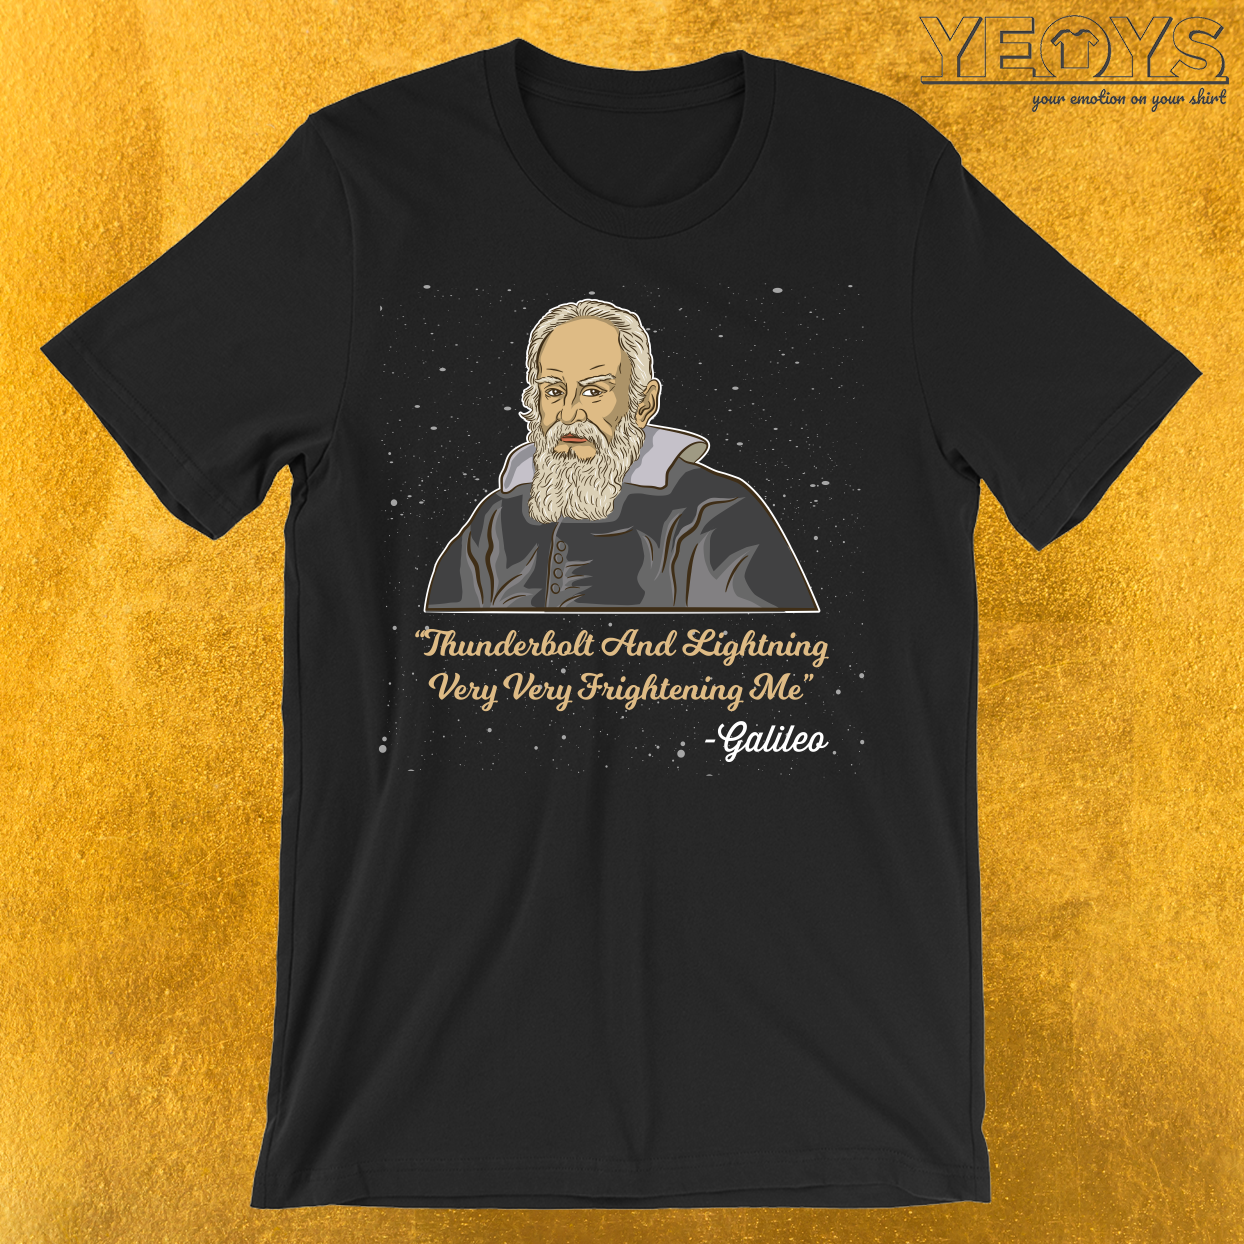 Thunderbolt And Lightning Galileo T-Shirt